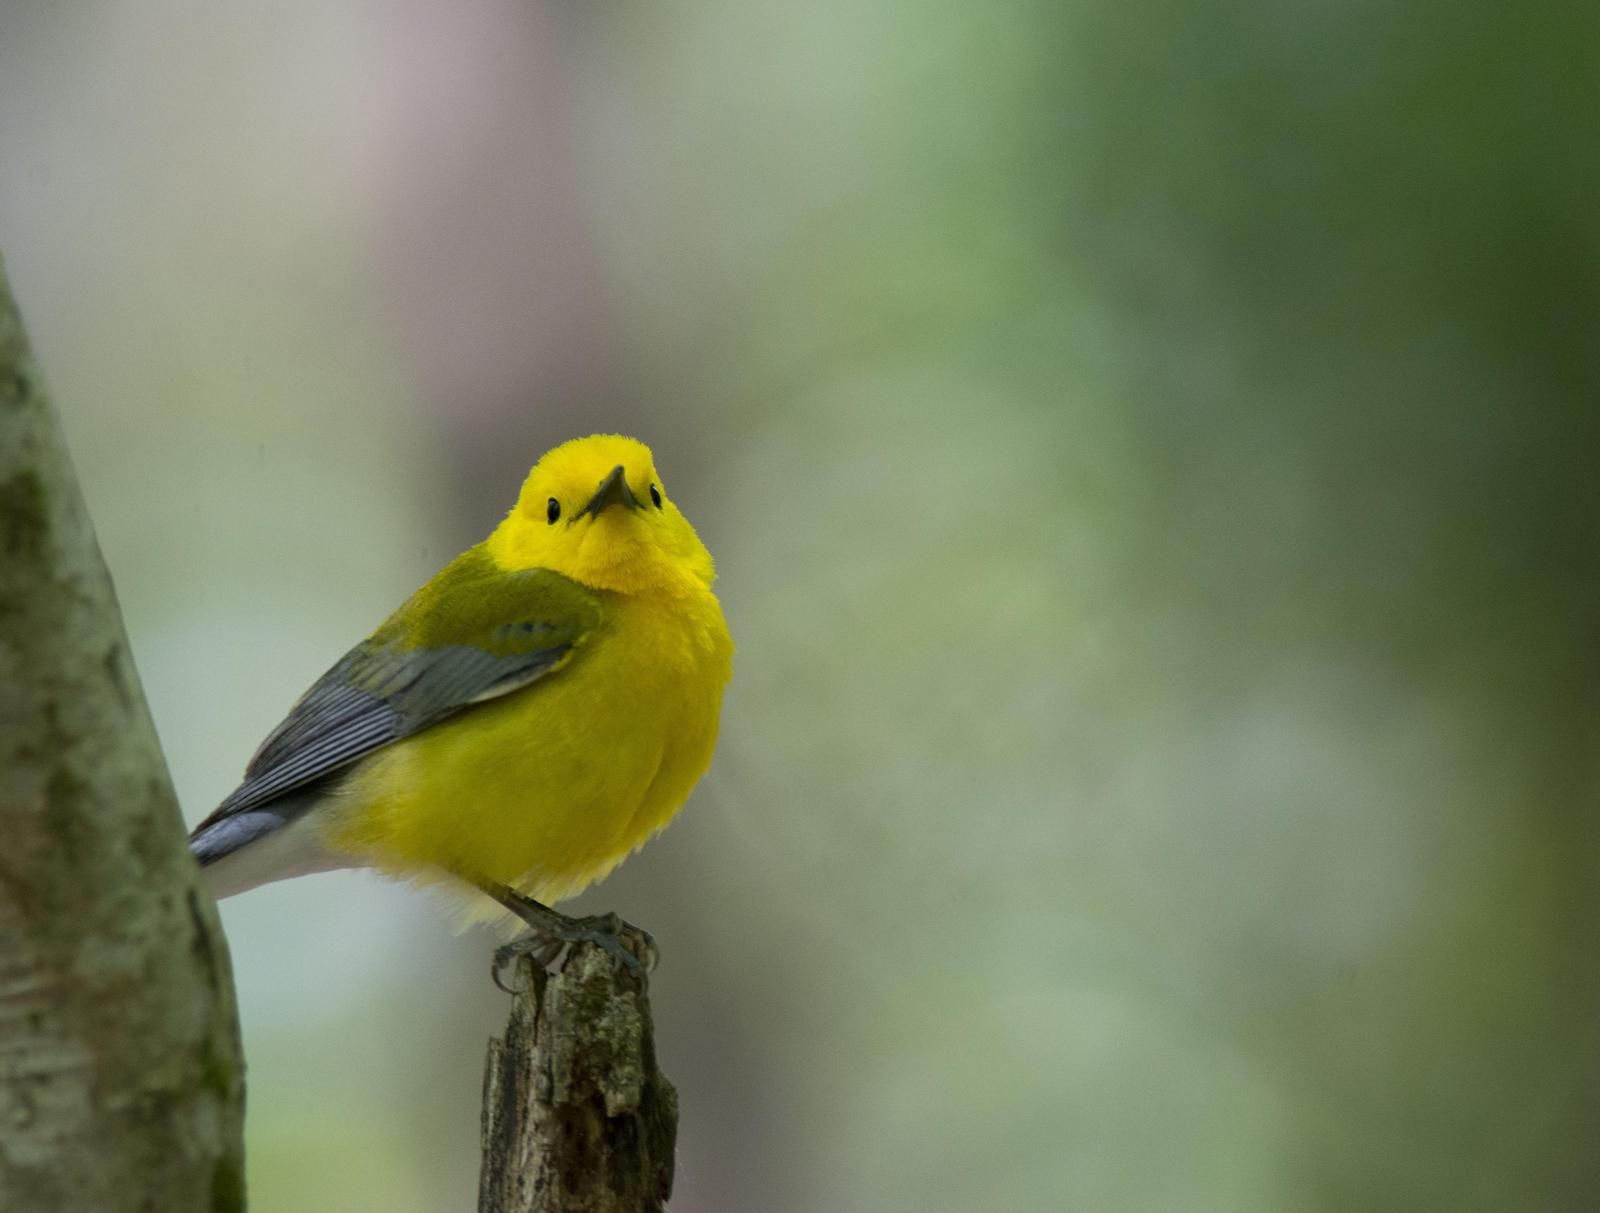 Prothonotary Warbler Photo by Jacob Zadik